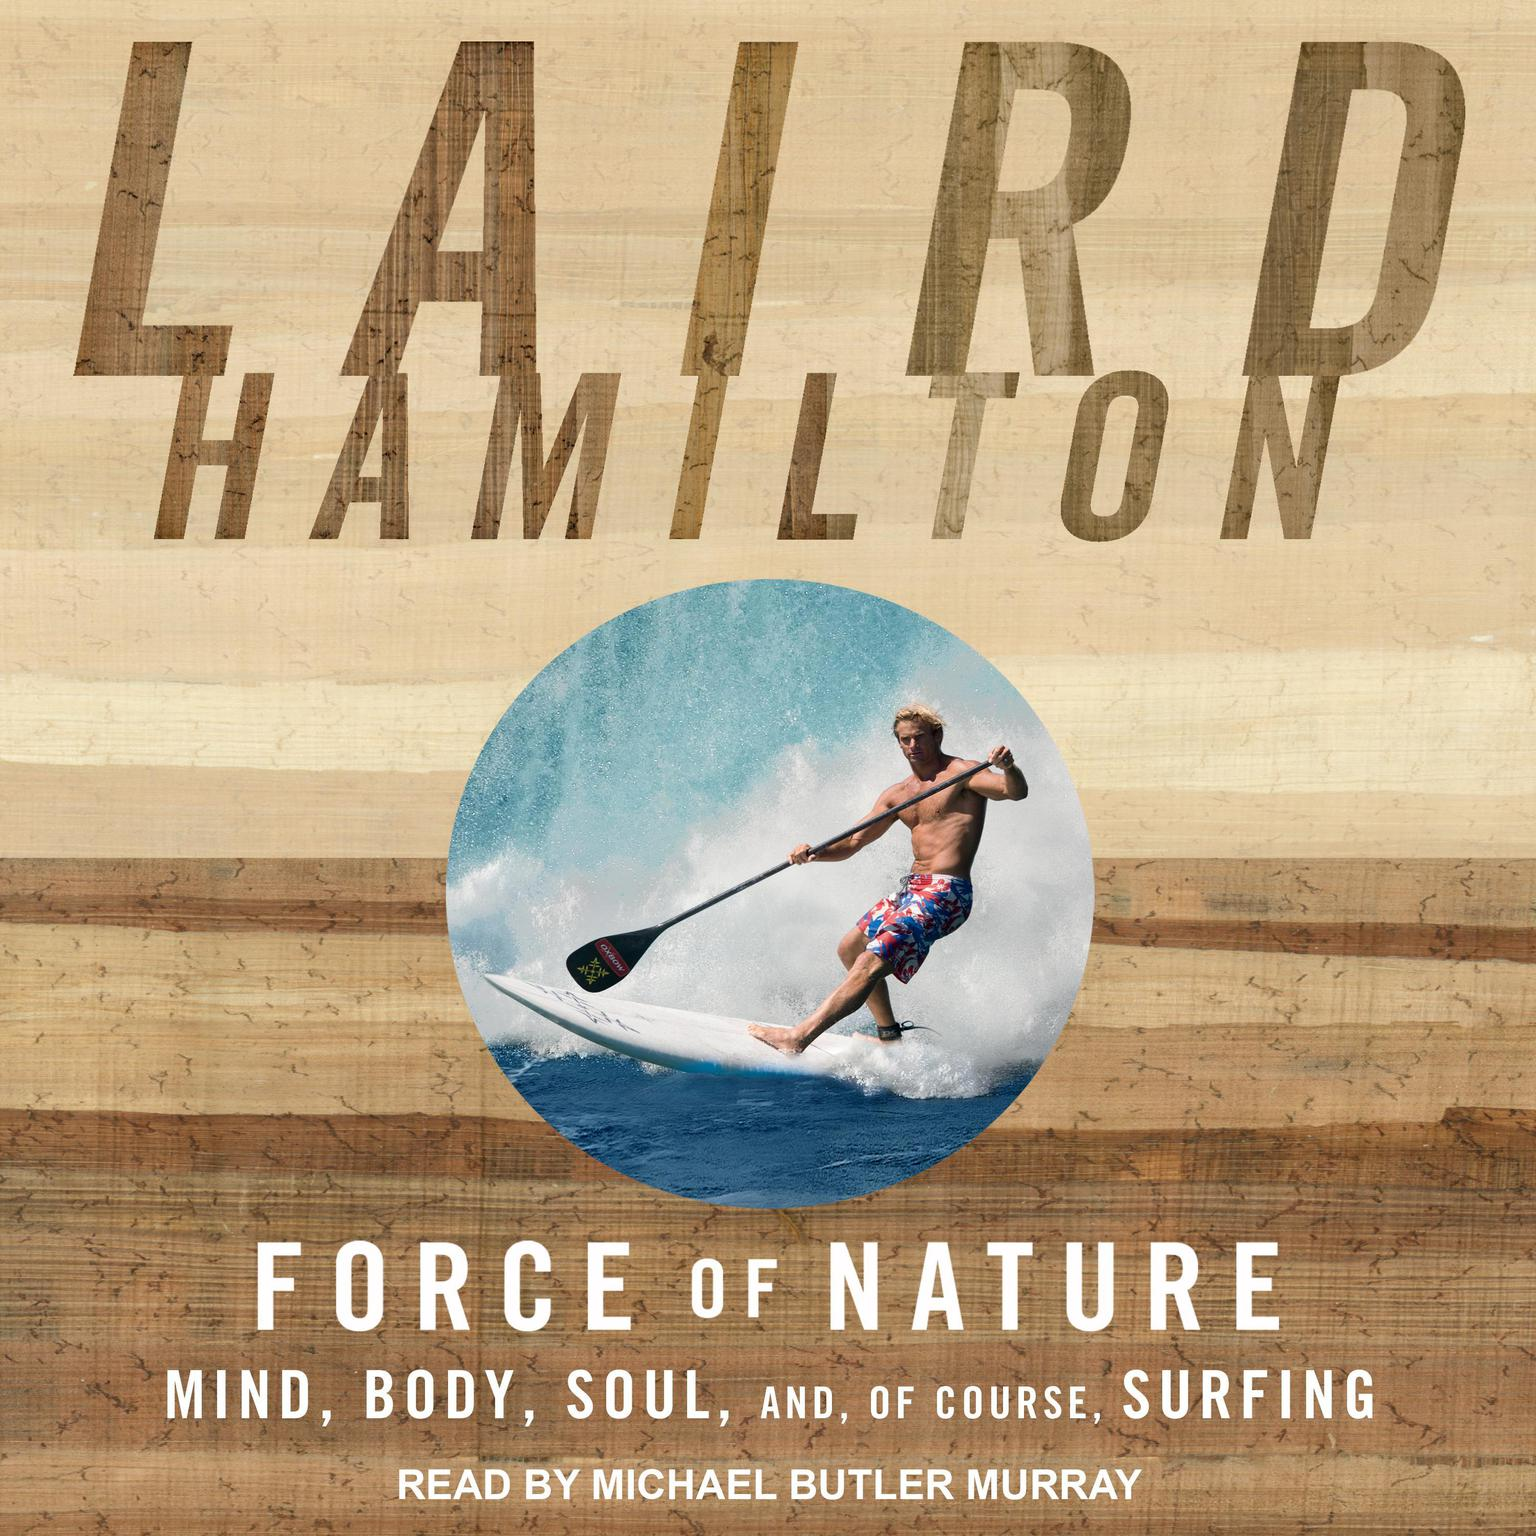 Force of Nature: Mind, Body, Soul, And, of Course, Surfing Audiobook, by Laird Hamilton